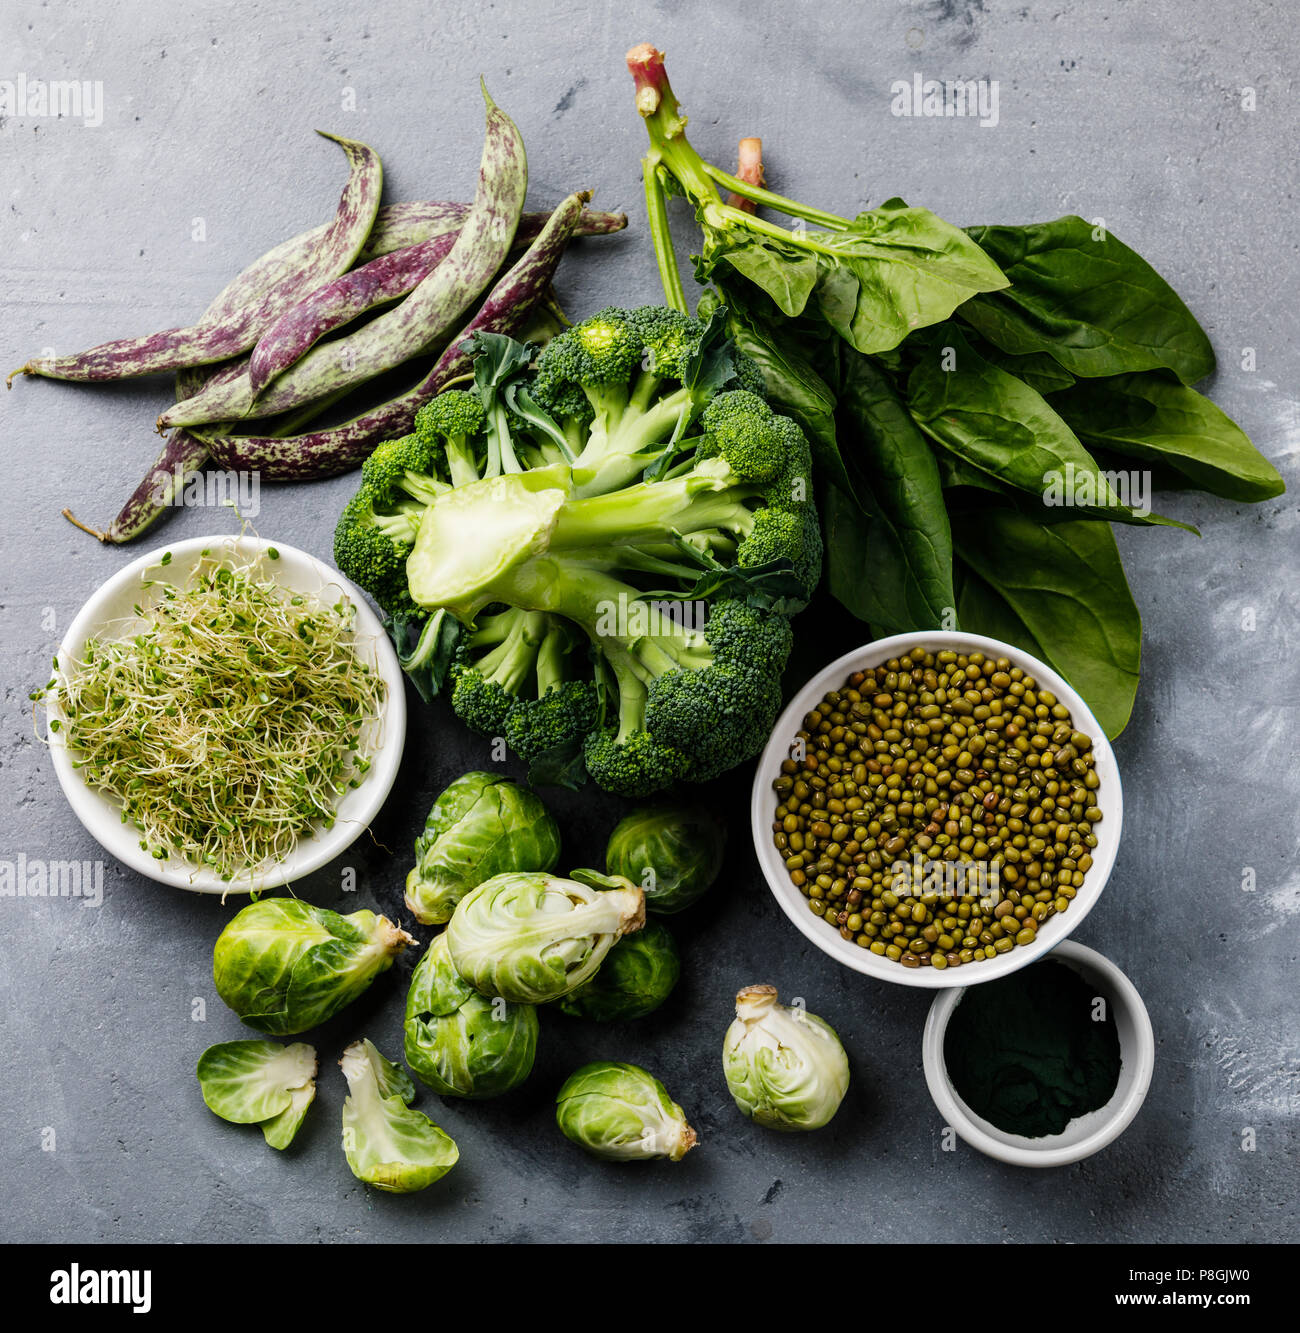 Healthy Green food Clean eating selection Protein source for vegetarians: brussels sprouts, broccoli, spinach, spirulina on gray concrete background - Stock Image